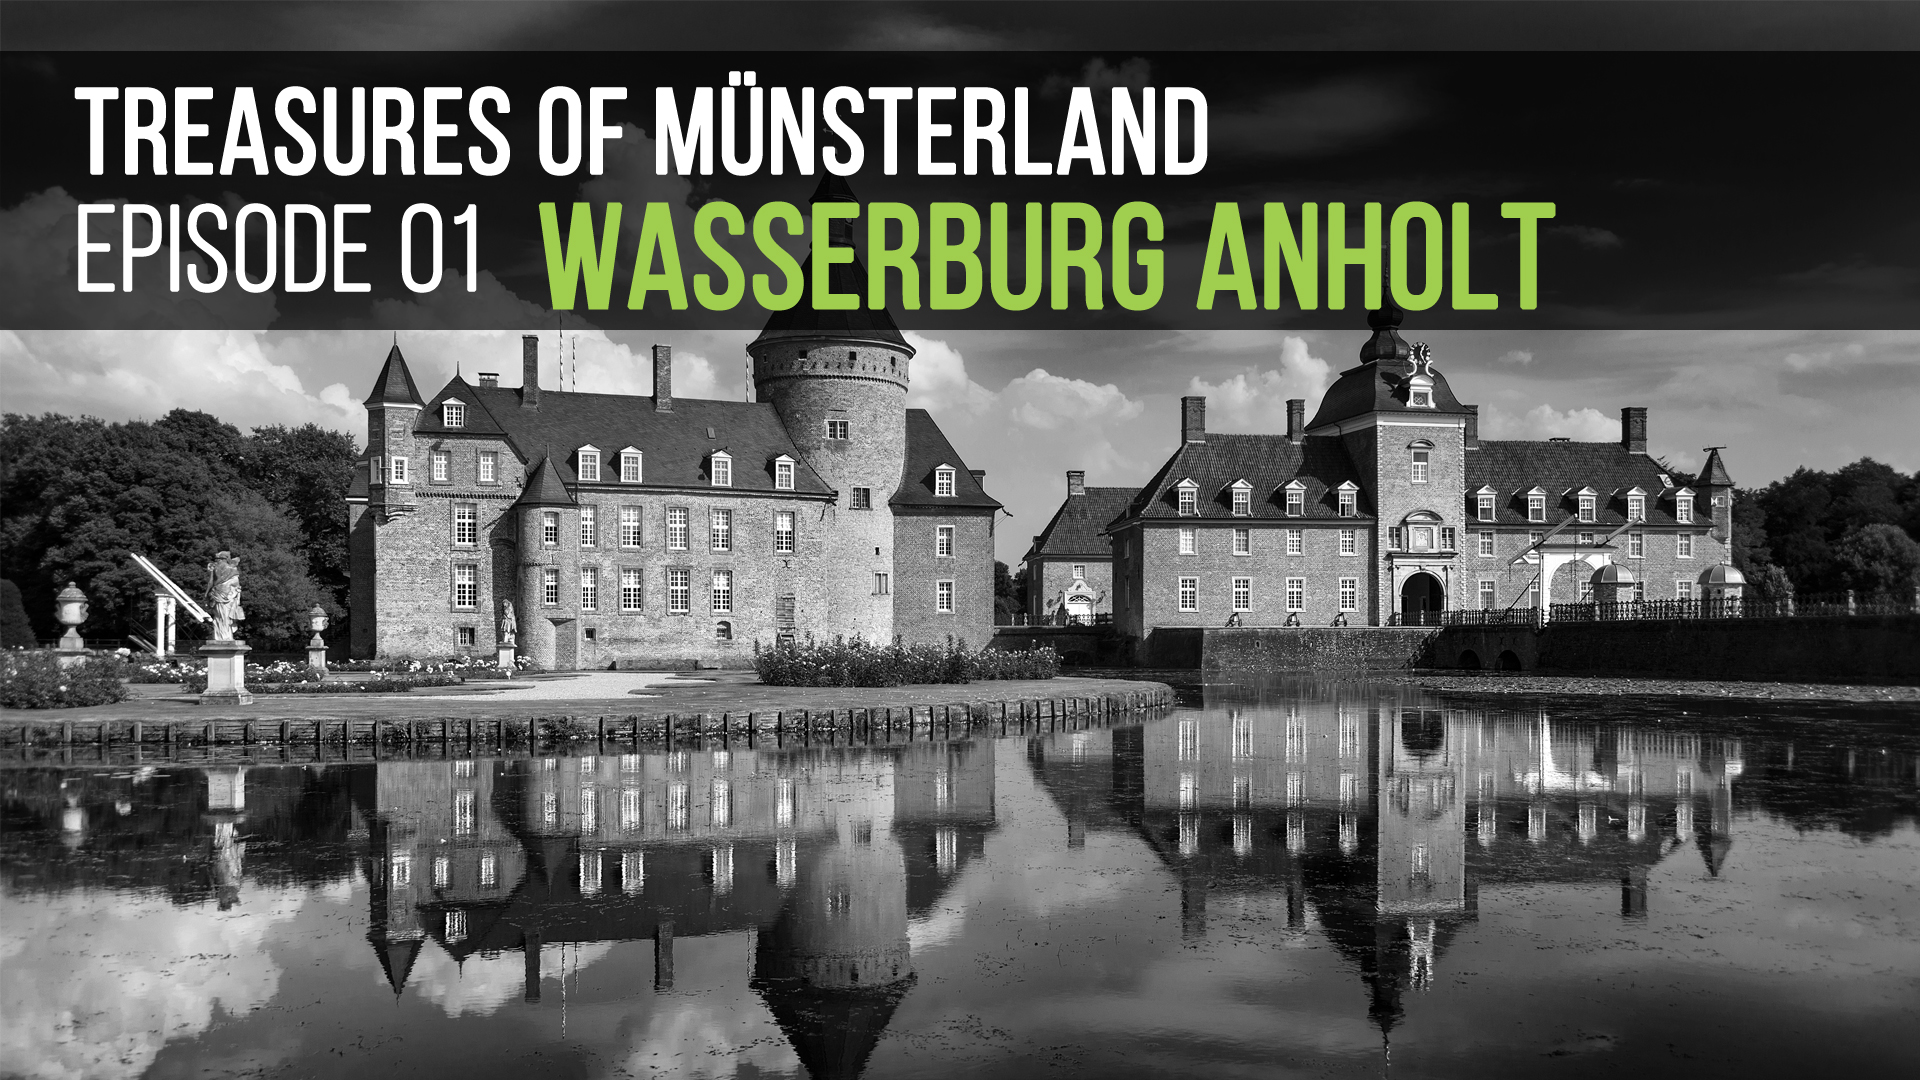 Treasures of Muensterland 01 - Waeerburg Anholt